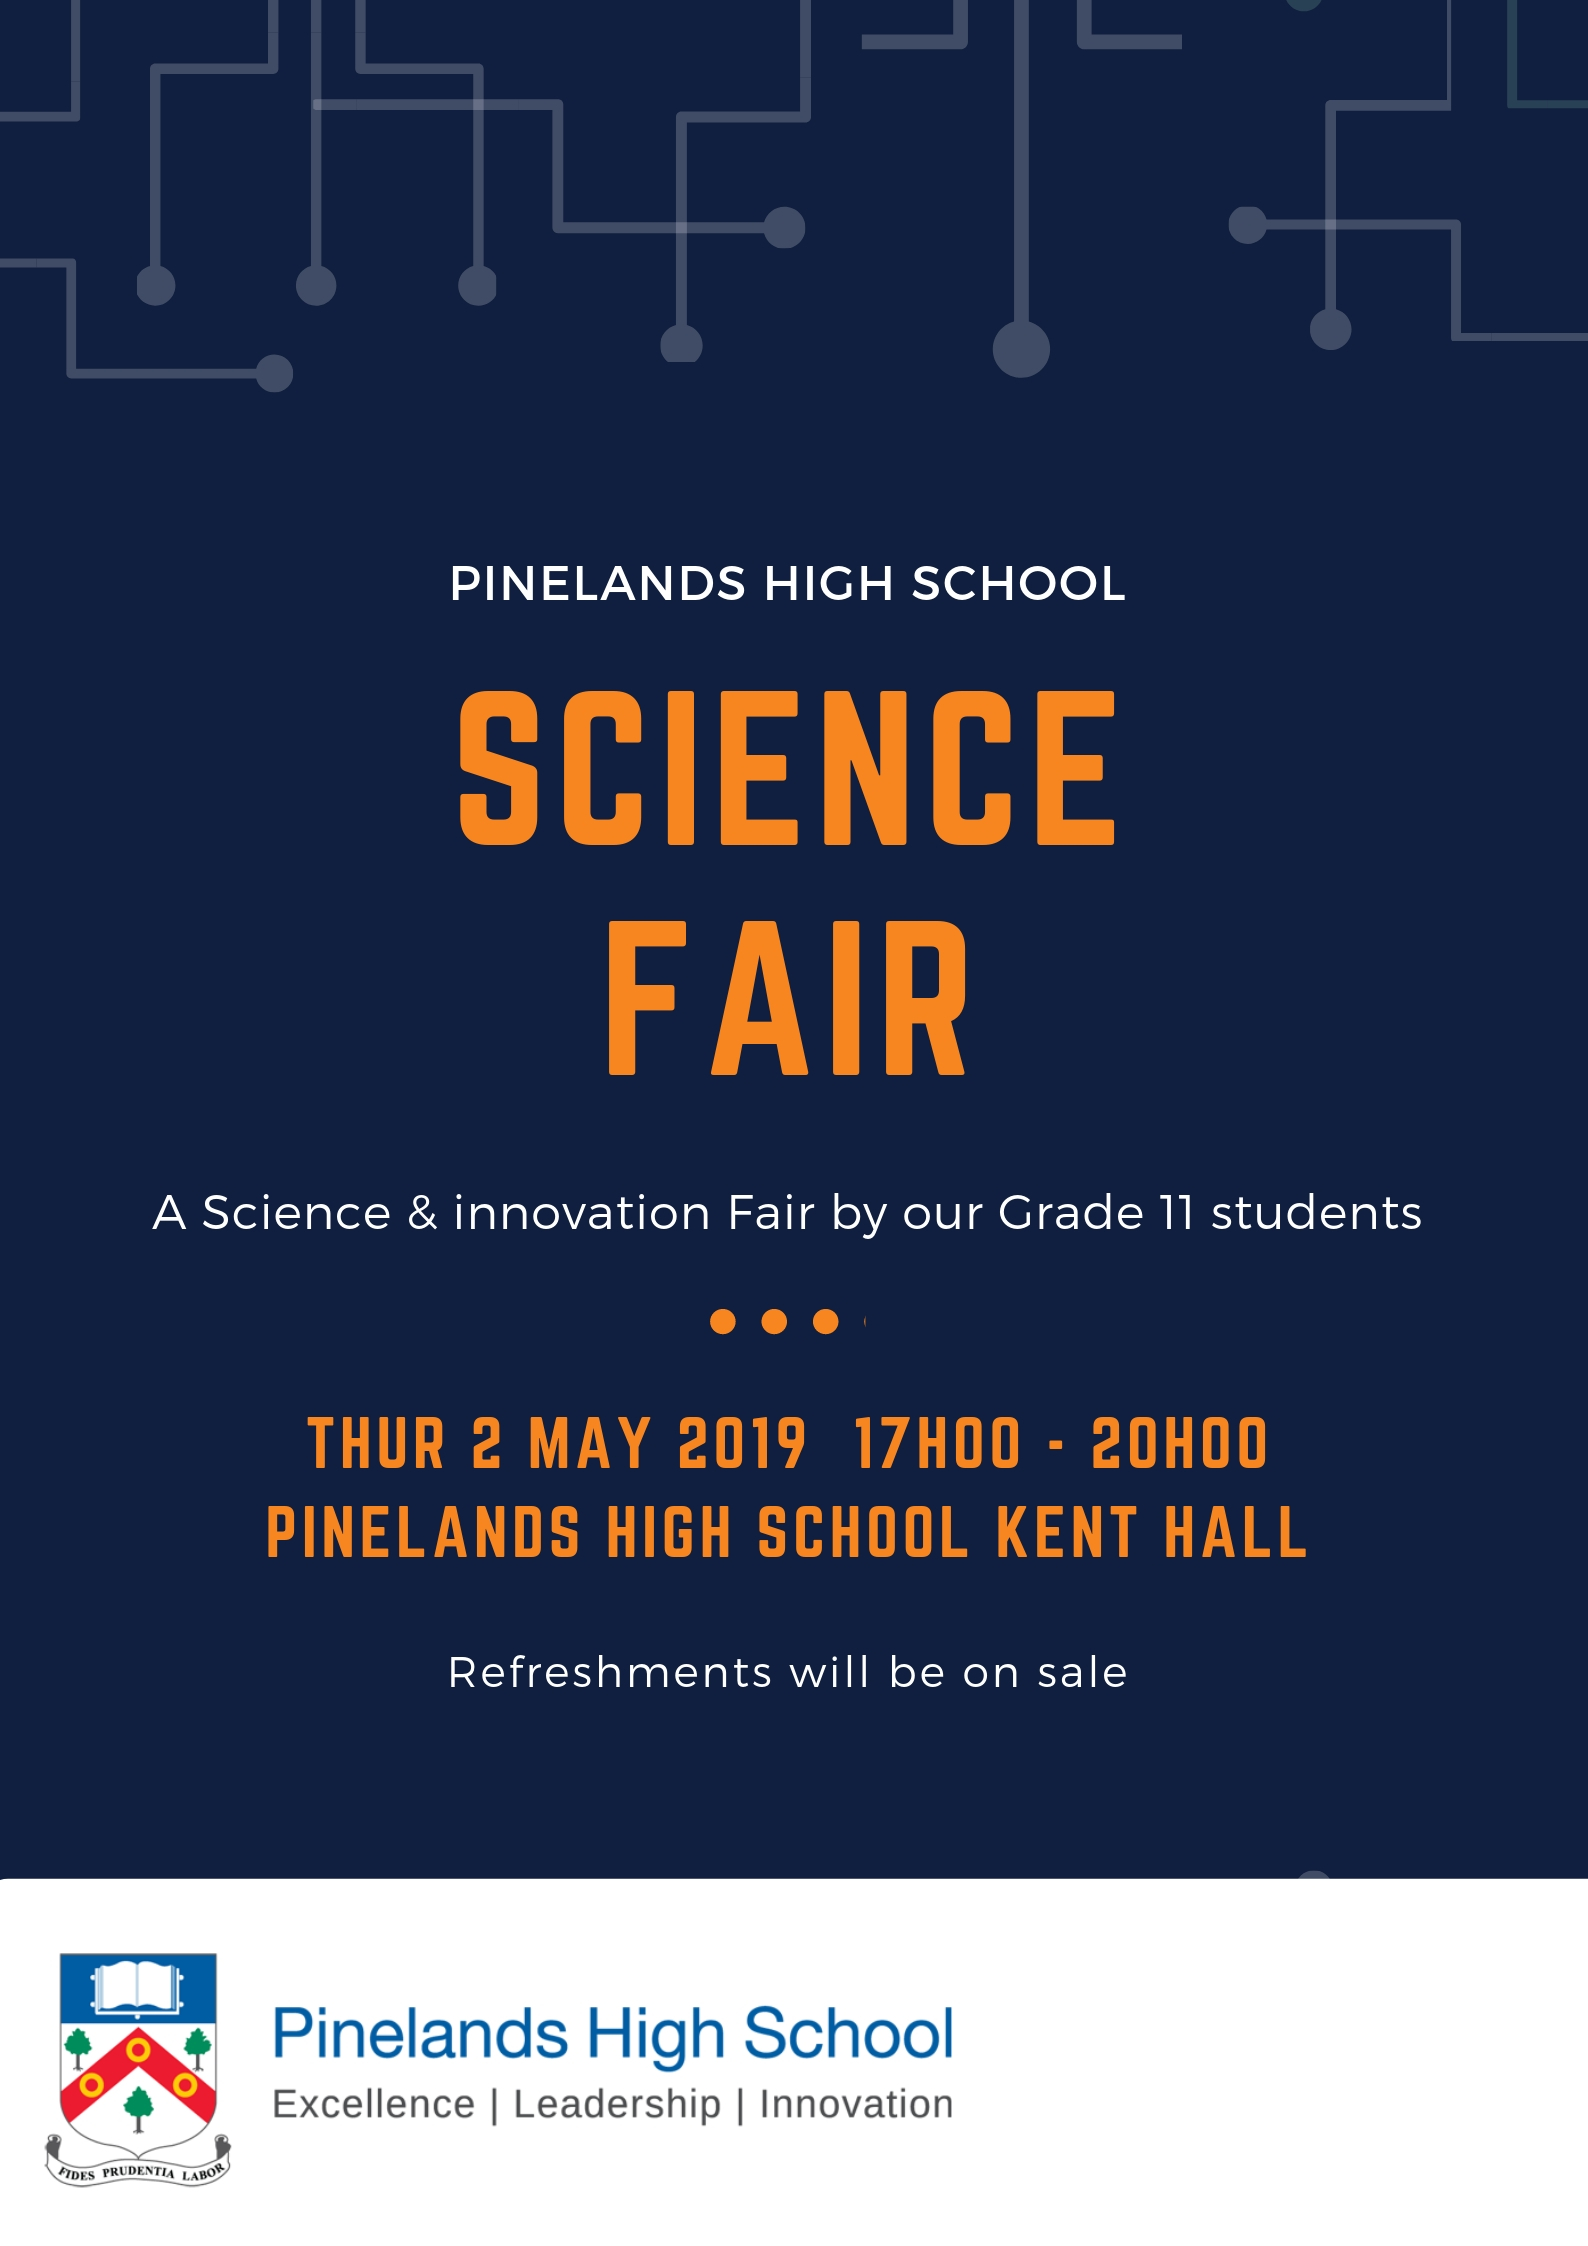 Science Fair Gd 11 2019